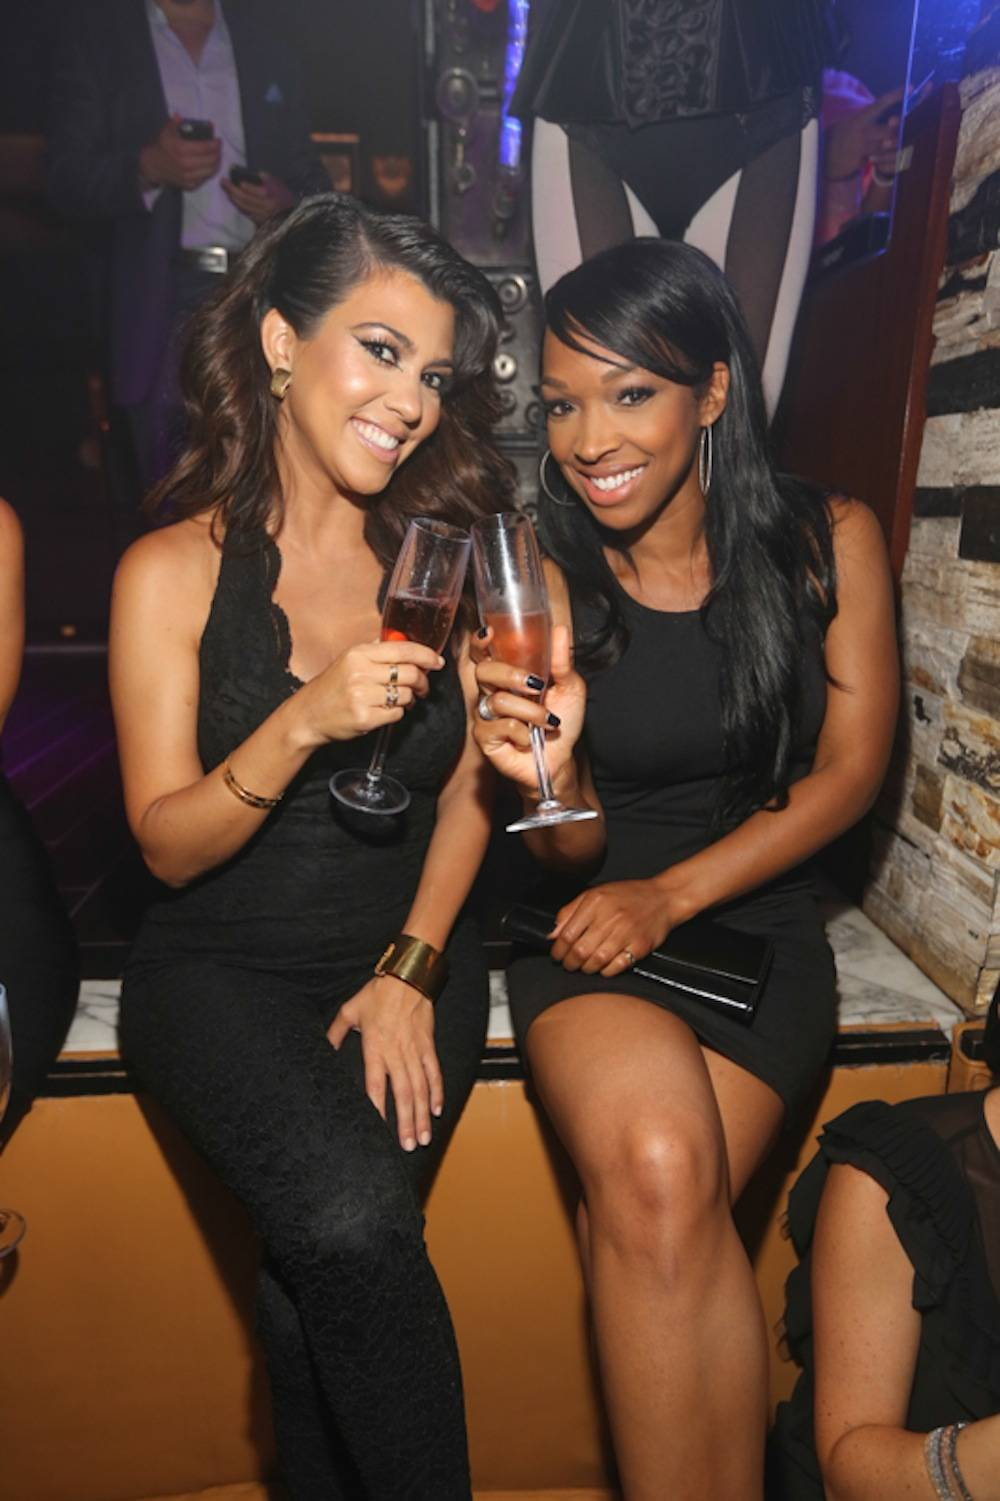 Kourtney Kardashian & Malika Haqq at Hyde Bellagio, Las Vegas, 8.31.13, photo credit - Hyde Bellagio